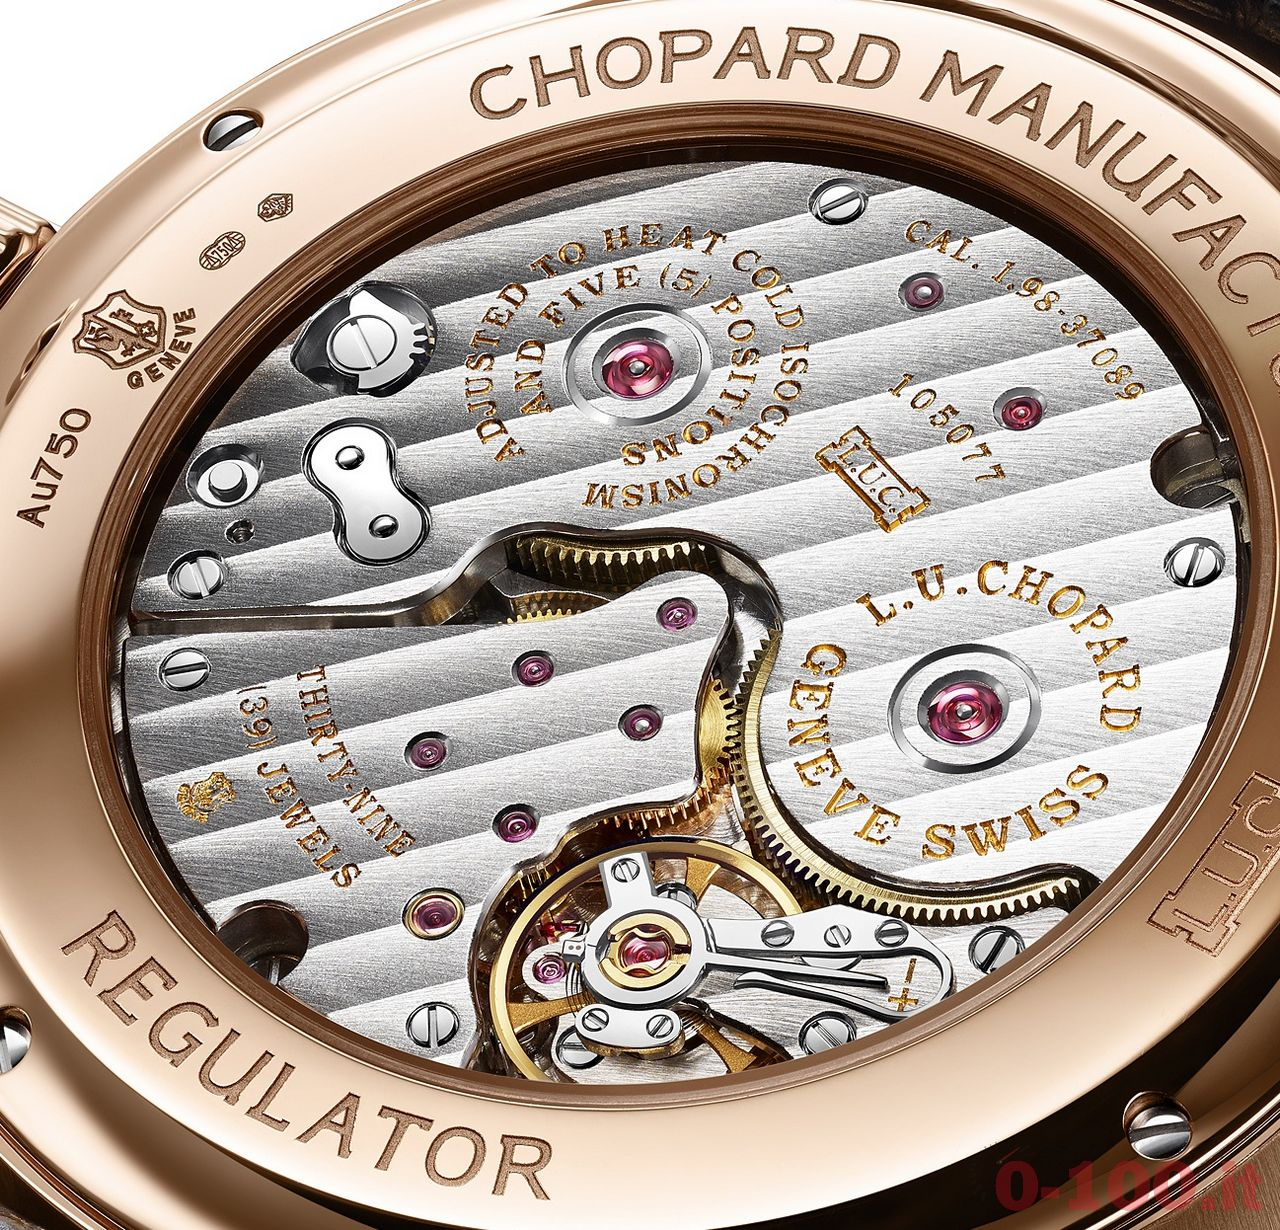 anteprima-baselworld-2015-chopard-l-u-c-regulator-ref-161971-5001-prezzo-price_0-100_4